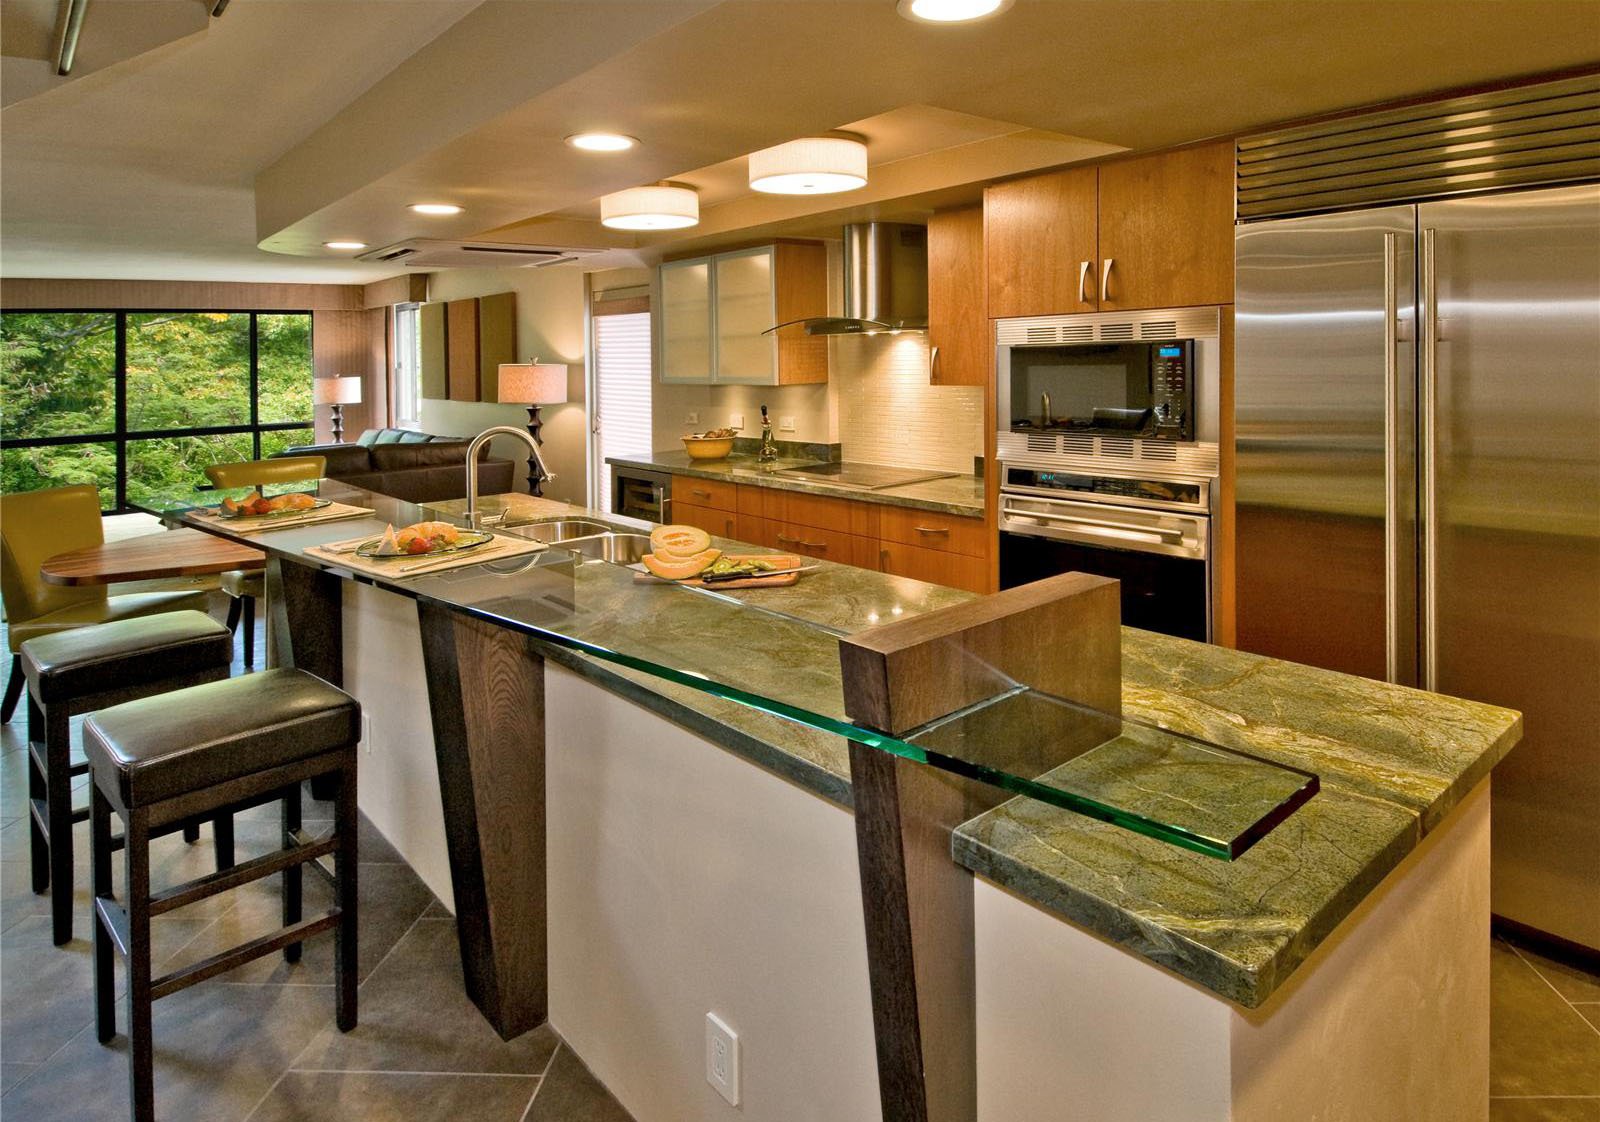 pictures of kitchen designs large island with seating and storage 25 contemporary design inspiration